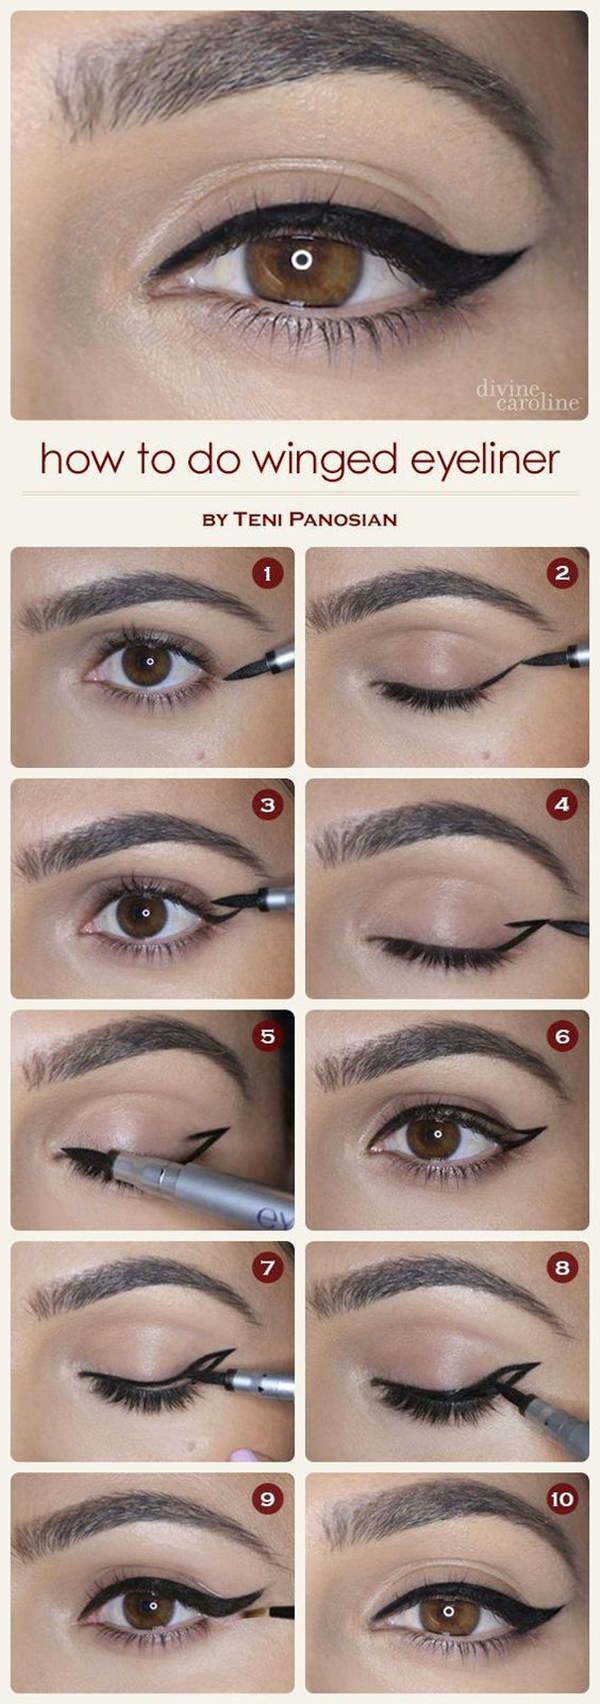 7b5d15226e2 35 Winged Eyeliner Styles, Tutorial & Tricks!